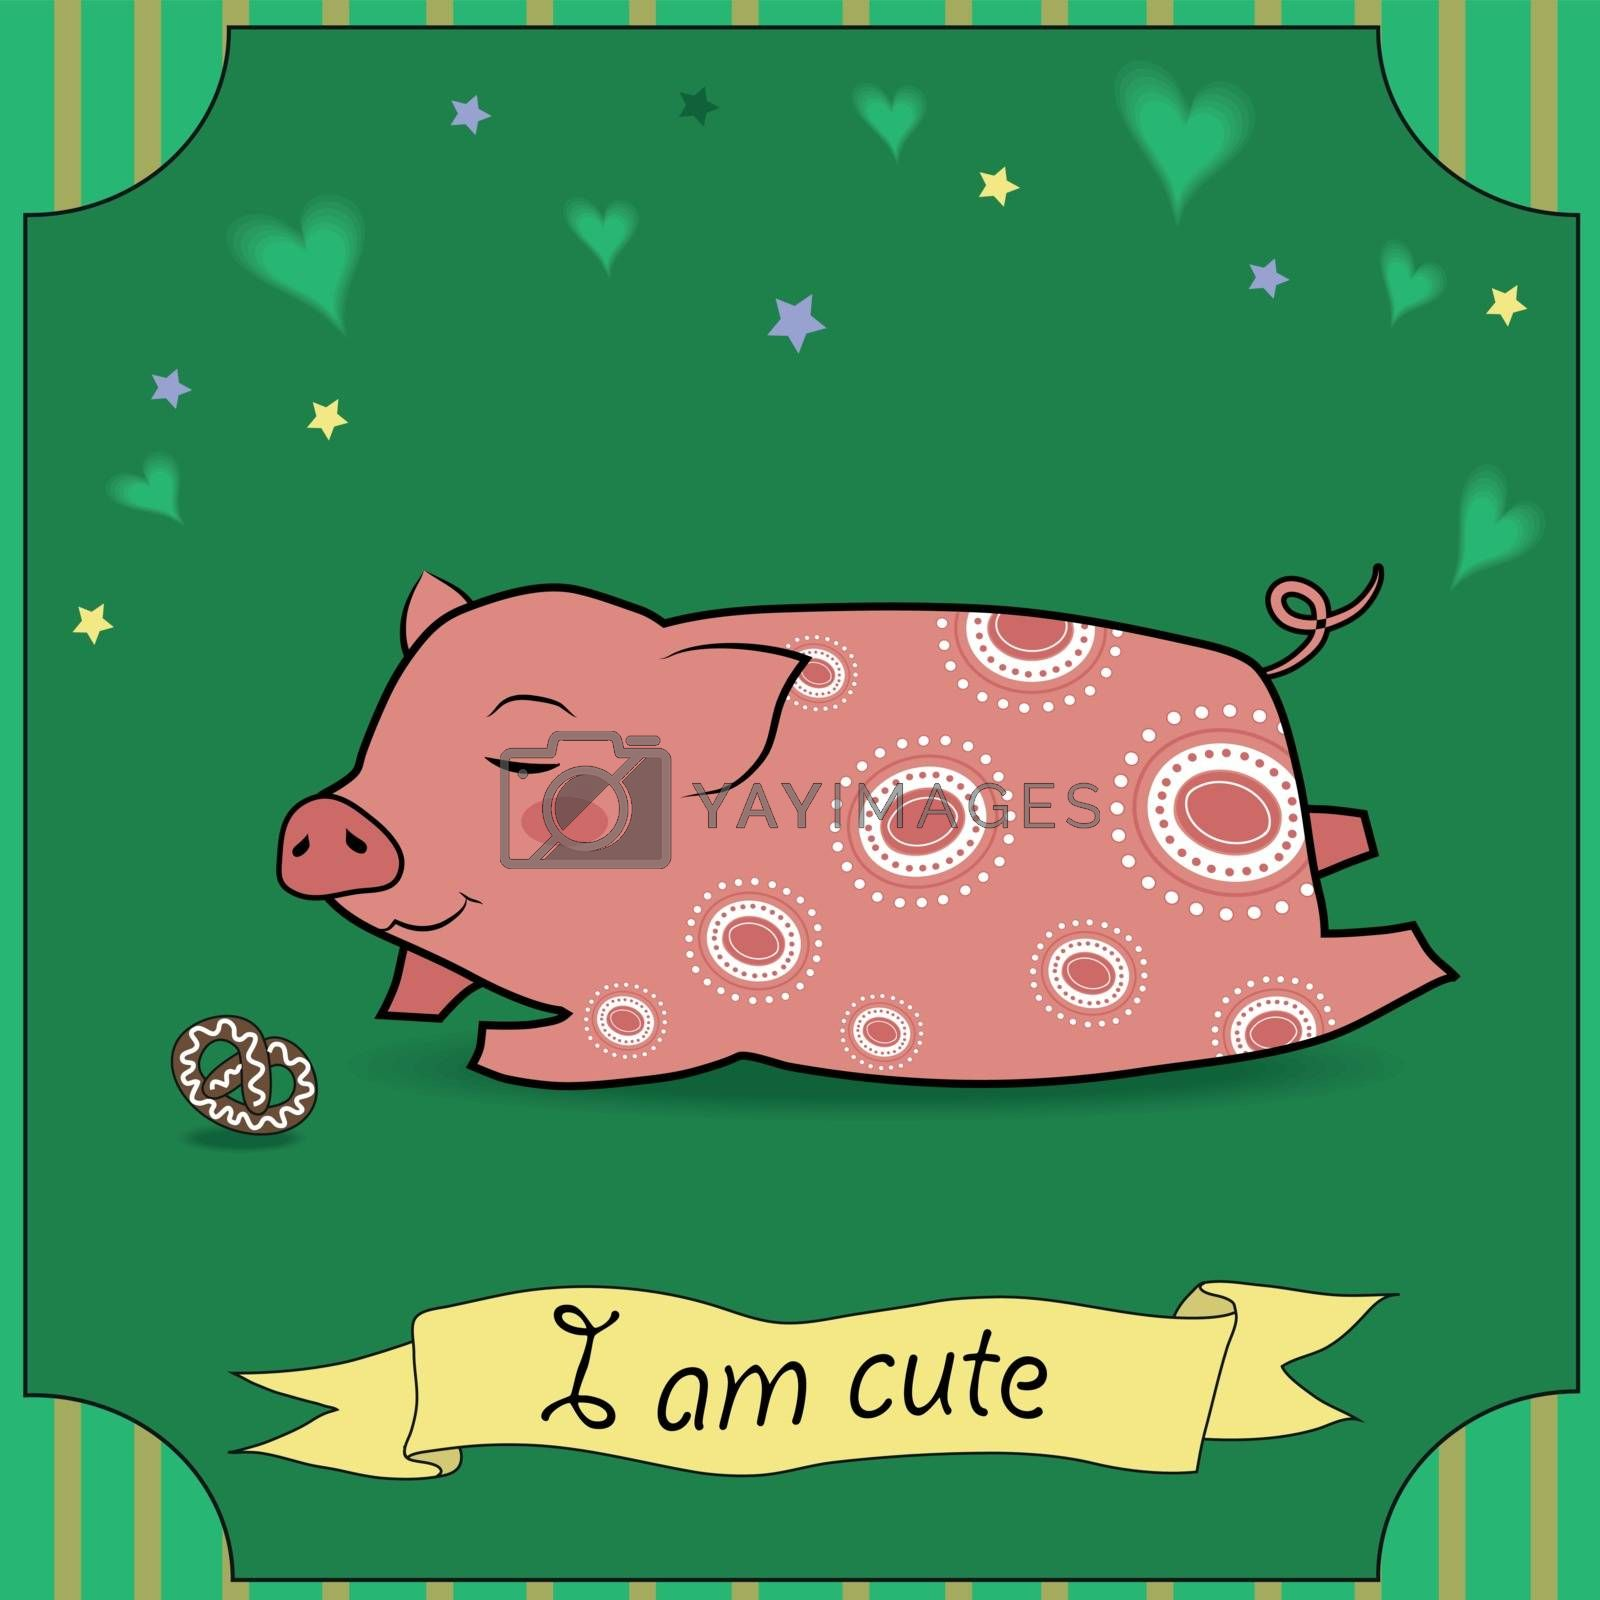 Royalty free image of Cute Pig with cake by prolegowoman